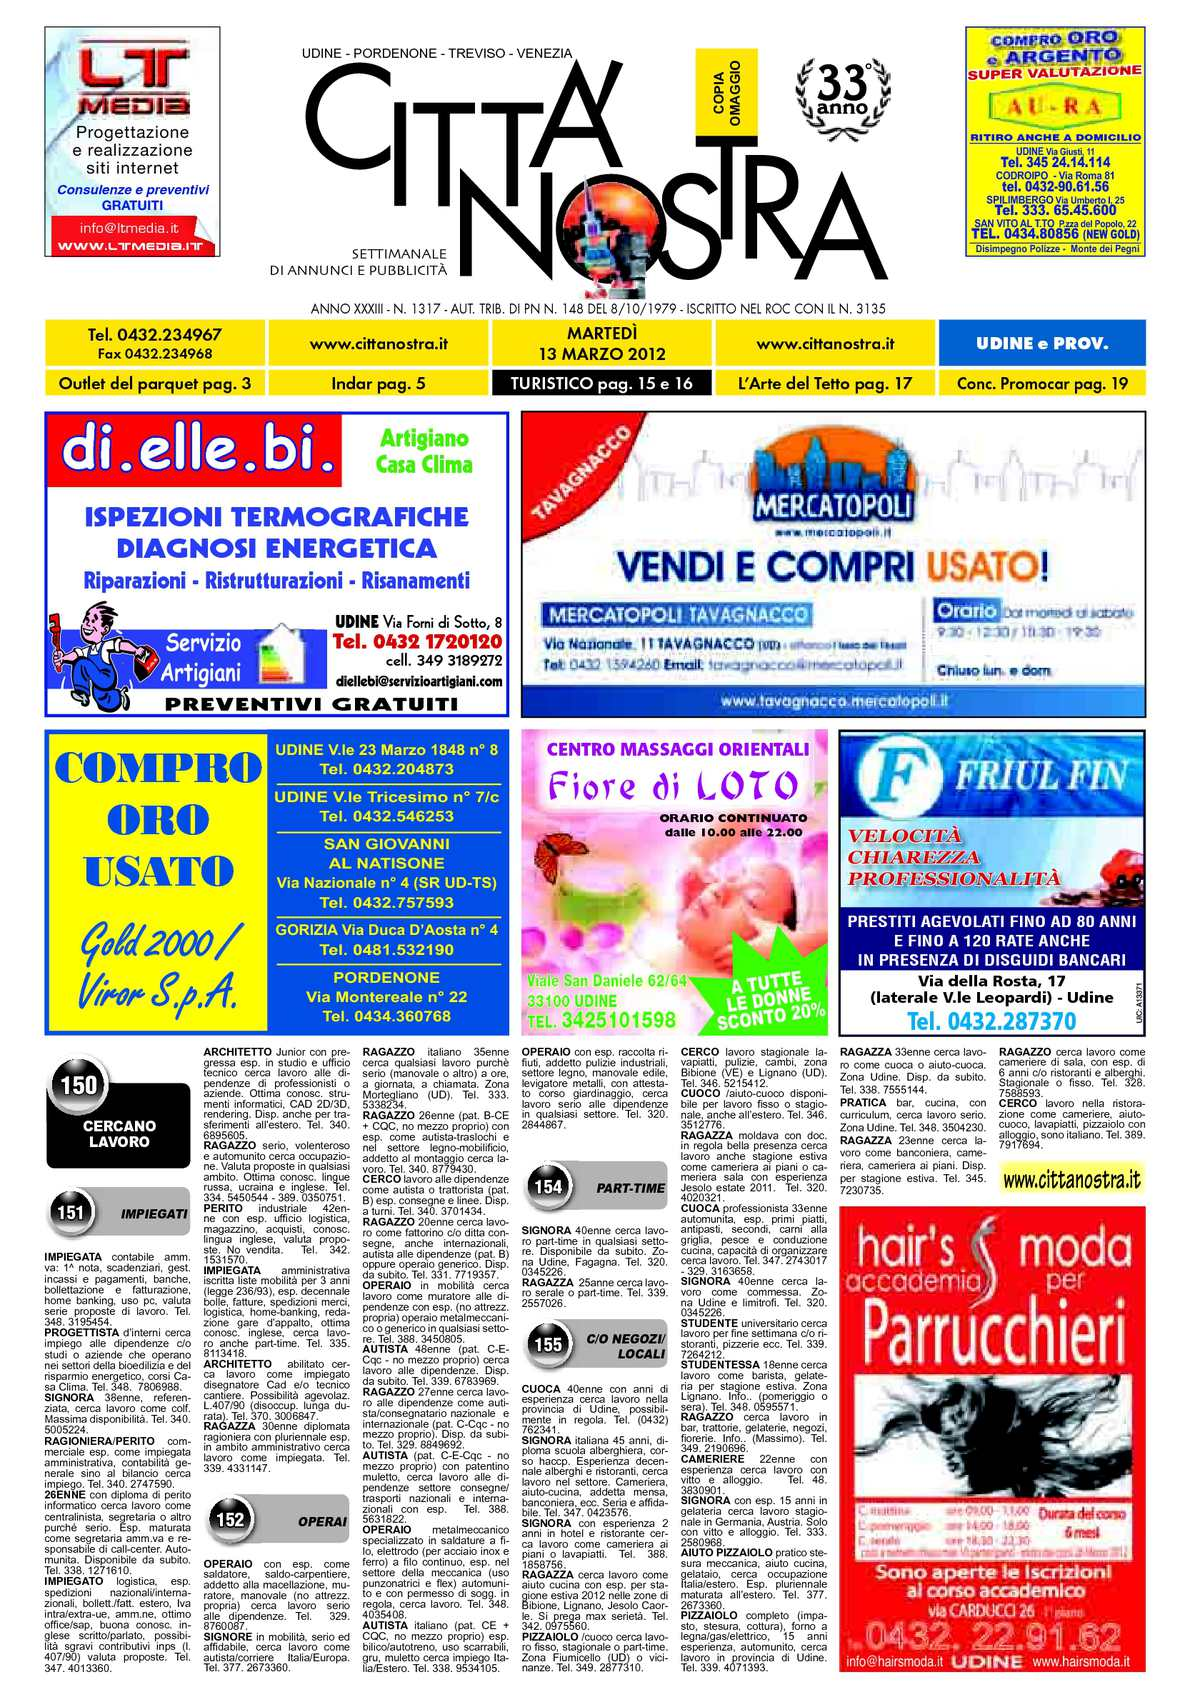 Gratis dating app iOS